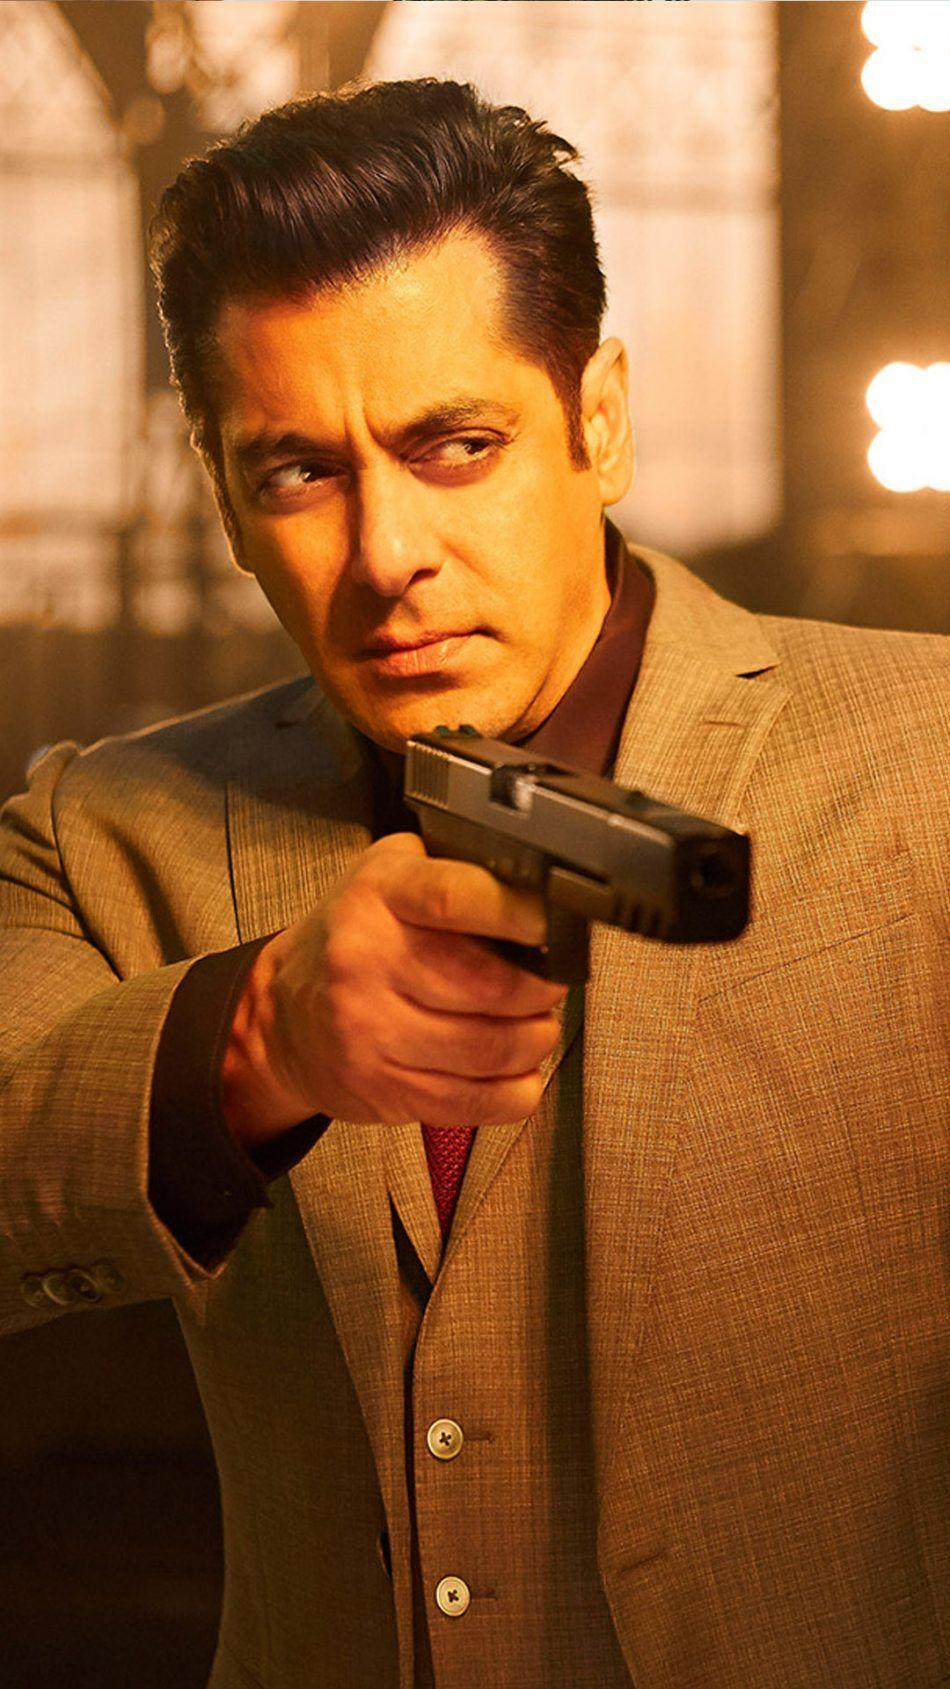 Download Salman Khan Race 3 Free Pure 4K Ultra HD Mobile Wallpapers